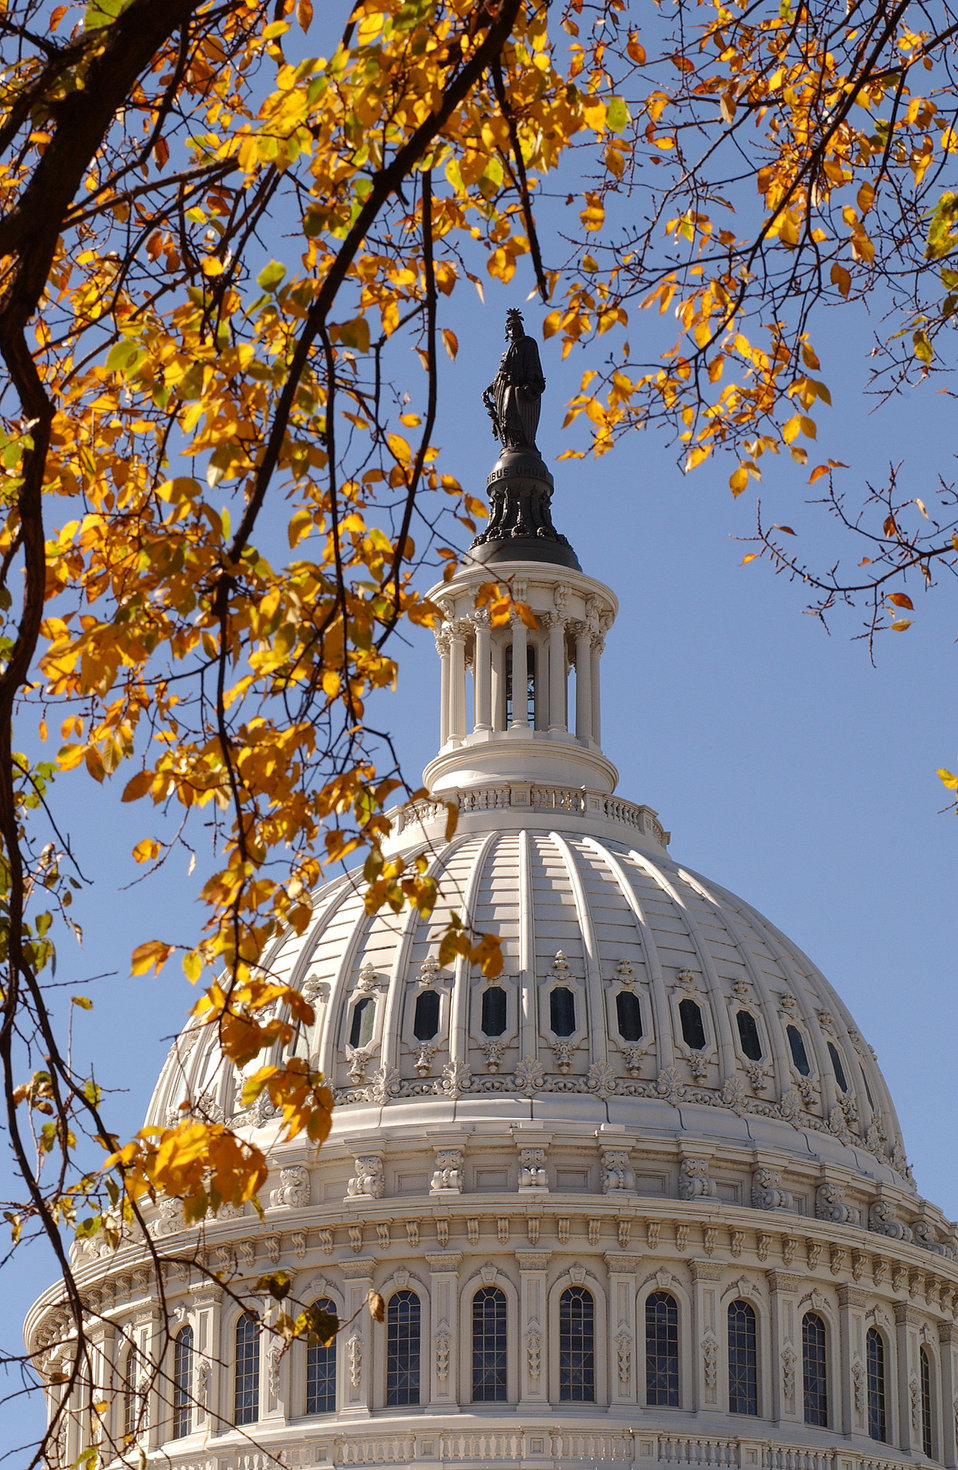 East Front view of upper section of Capitol dome with fall foliage